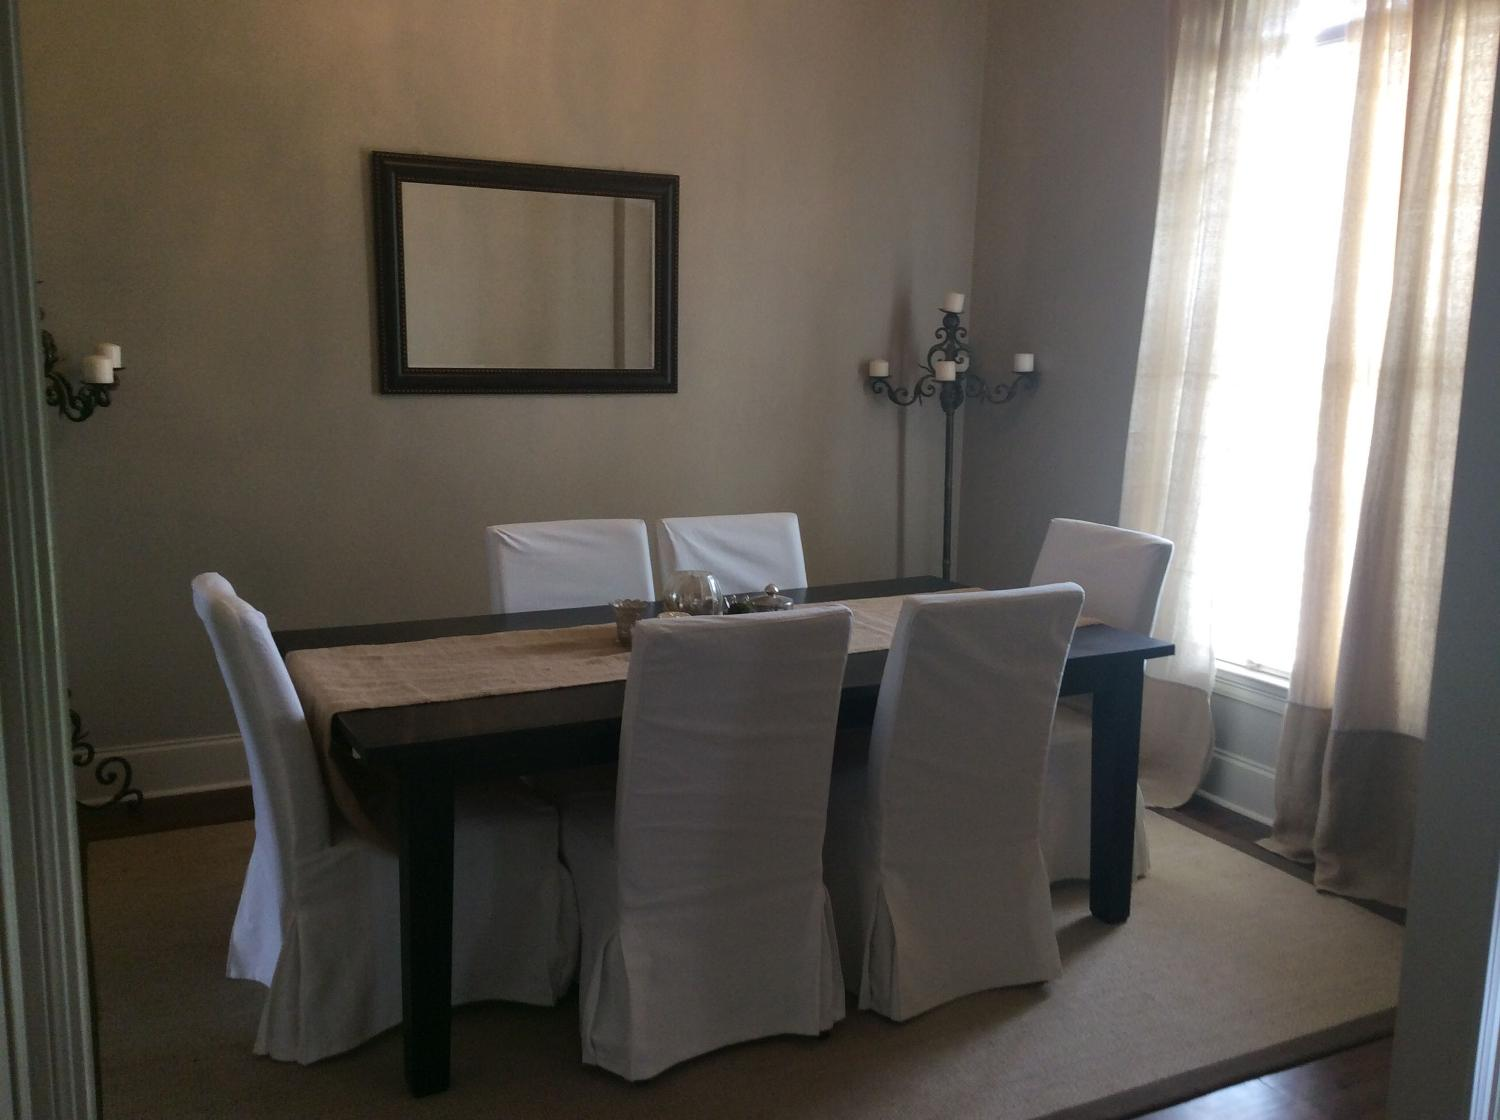 best dining table with 6 chairs for sale in hattiesburg mississippi for 2018. Black Bedroom Furniture Sets. Home Design Ideas